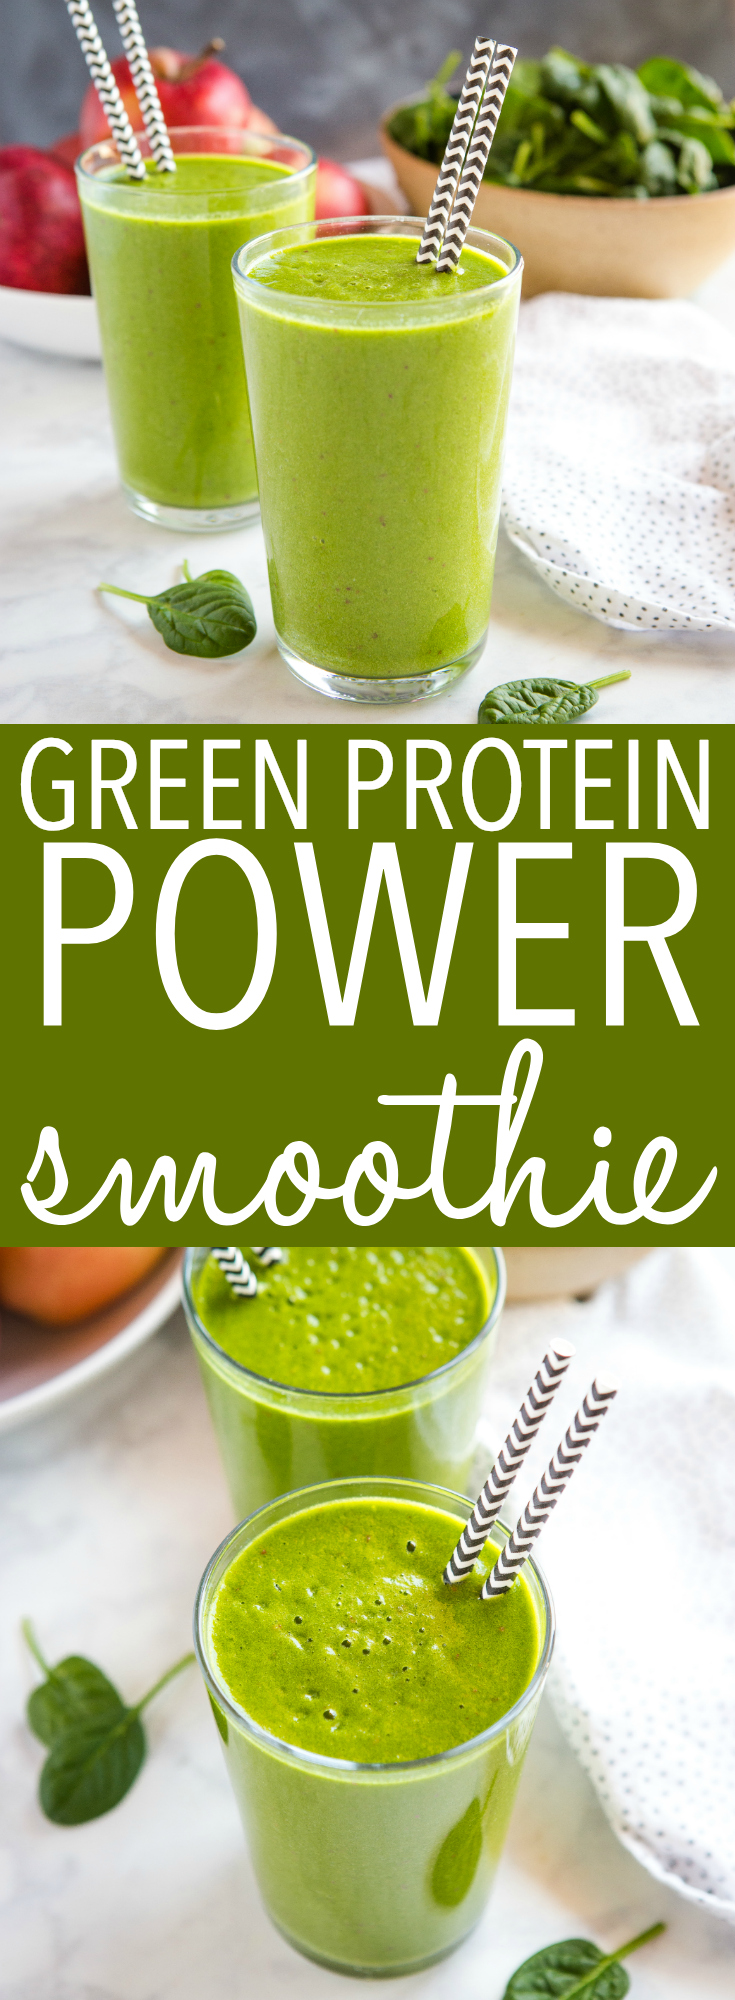 This Healthy Green Protein Smoothie makes the perfect healthy breakfast or post-workout snack! It's packed with greens, healthy fruits, and it's vegan and dairy-free! Recipe from thebusybaker.ca! #greens #smoothie #vegan #dairyfree #vegetarian #plantbased #workout #fitness #juice #juicing #blendtec #vitamix via @busybakerblog